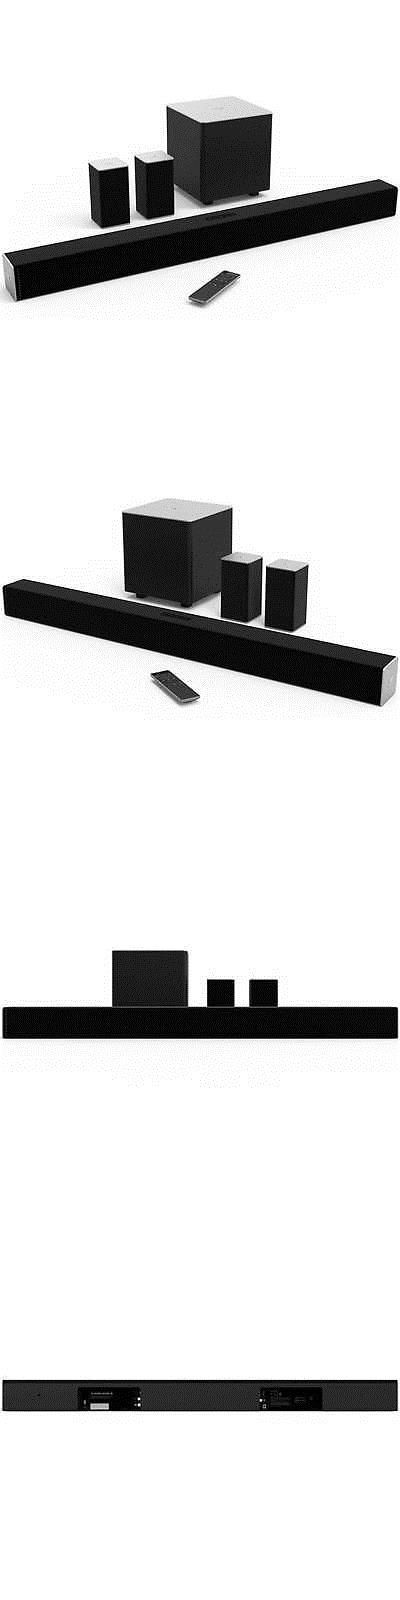 Home Speakers and Subwoofers: Vizio 38 5.1Ch Bluetooth Sound Bar W/ Wireless Sub And Speakers -> BUY IT NOW ONLY: $229.99 on eBay!